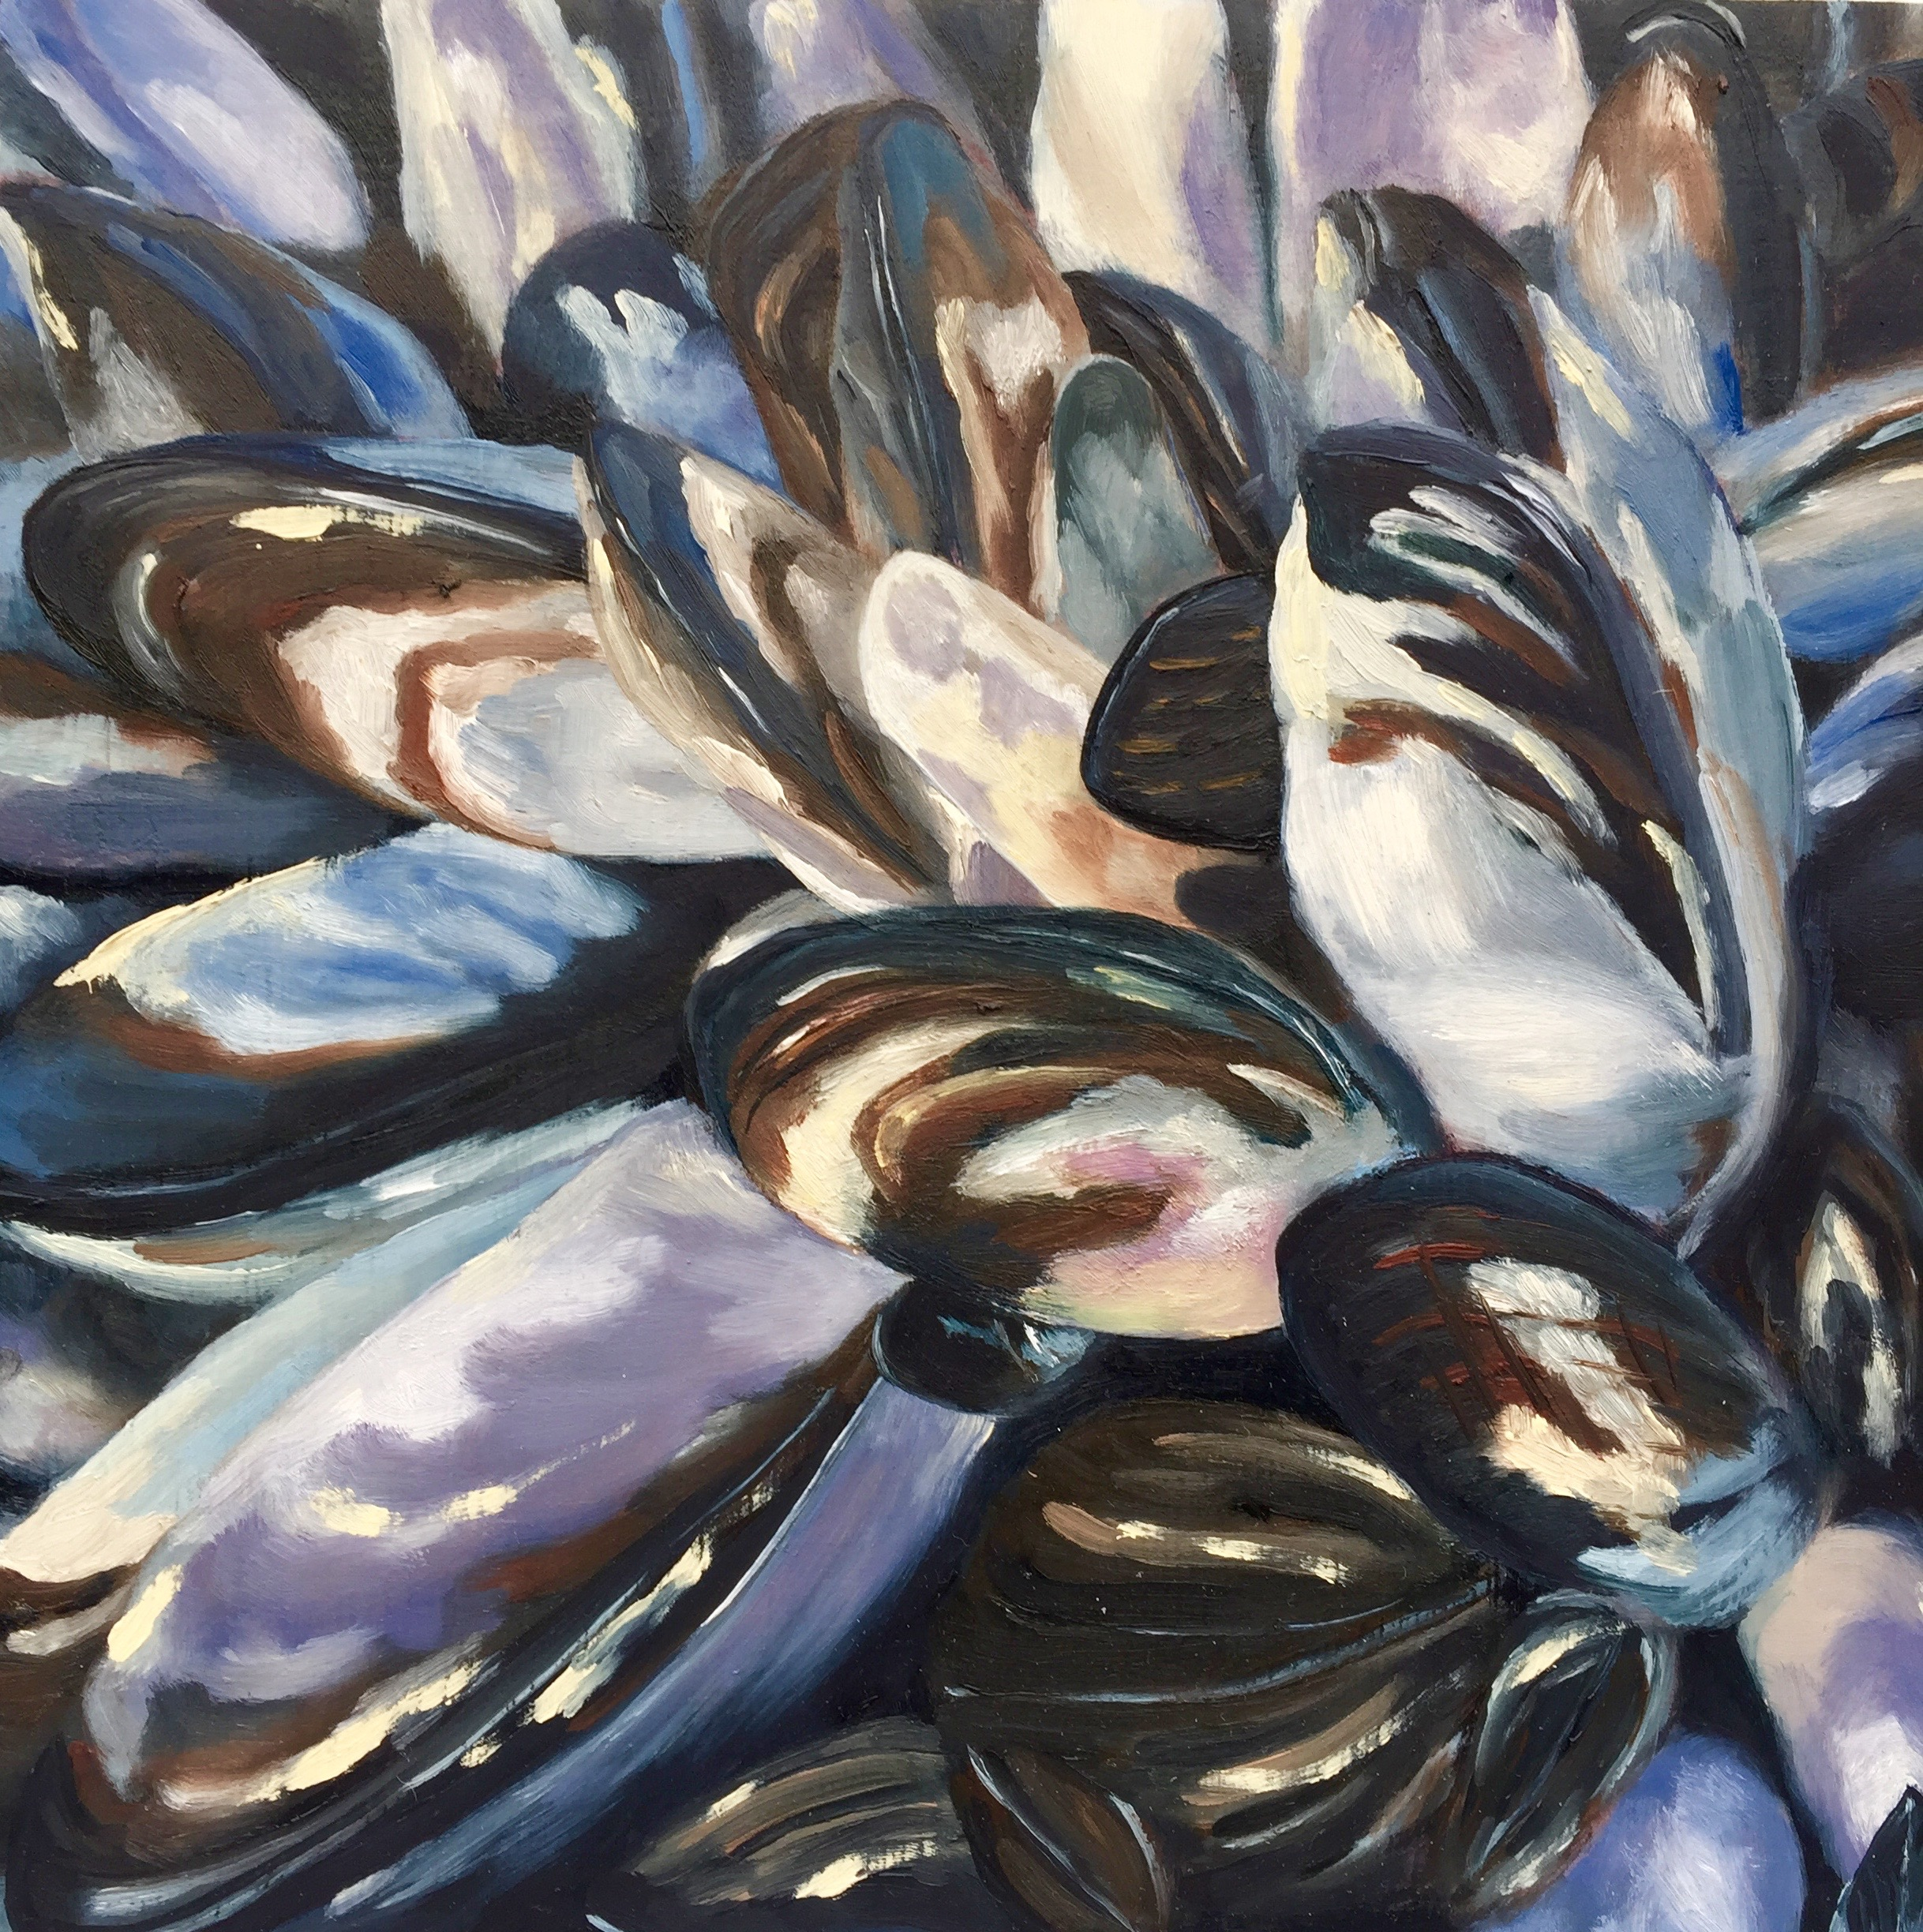 Mussels - STUDIO Gallery, tinyJuly 5 - July 30, 2018Open Reception: Sunday, November 11, 11:00am - 6:00pm15th Anniversary Party: Sunday, December 2, 1:00pm - 6:00pmSTUDIO Gallery, 1641 Pacific Avenue, San Francisco, CA 94109Gallery Hours: Open daily 11:00am - 7:00pm, closed Tuesday and Wednesday